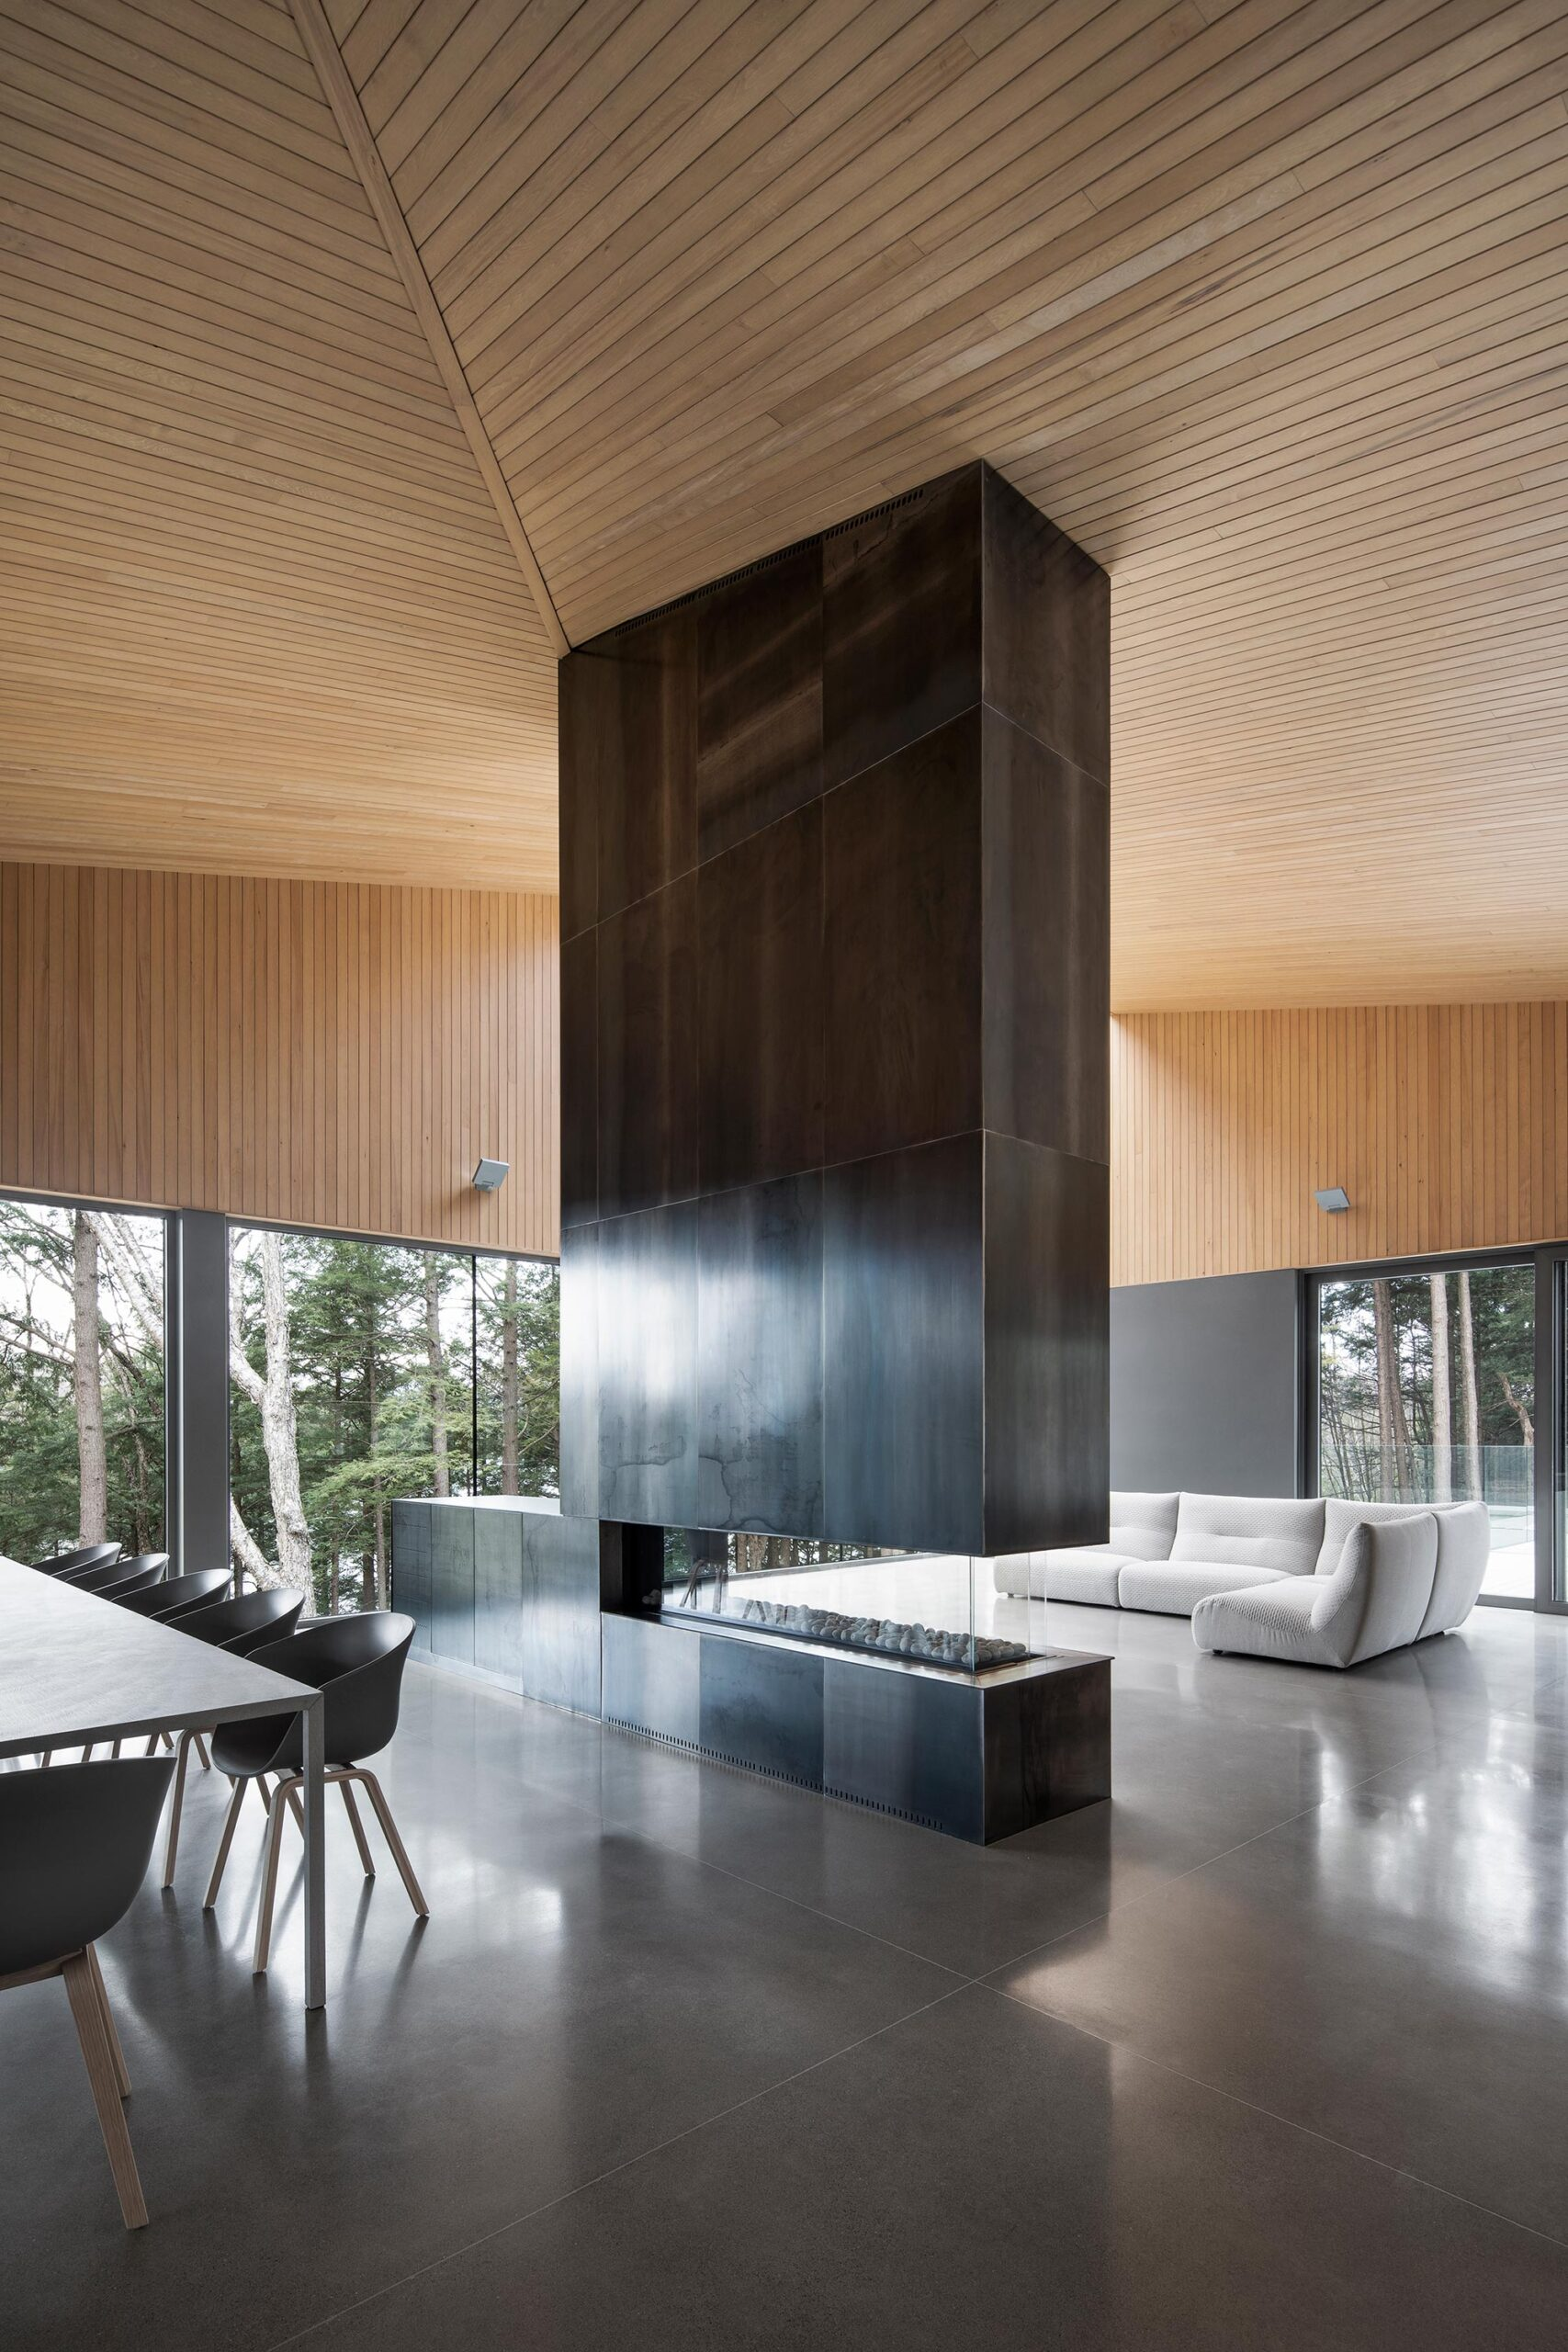 Memphremagog lake house naturehumaine architecture & design